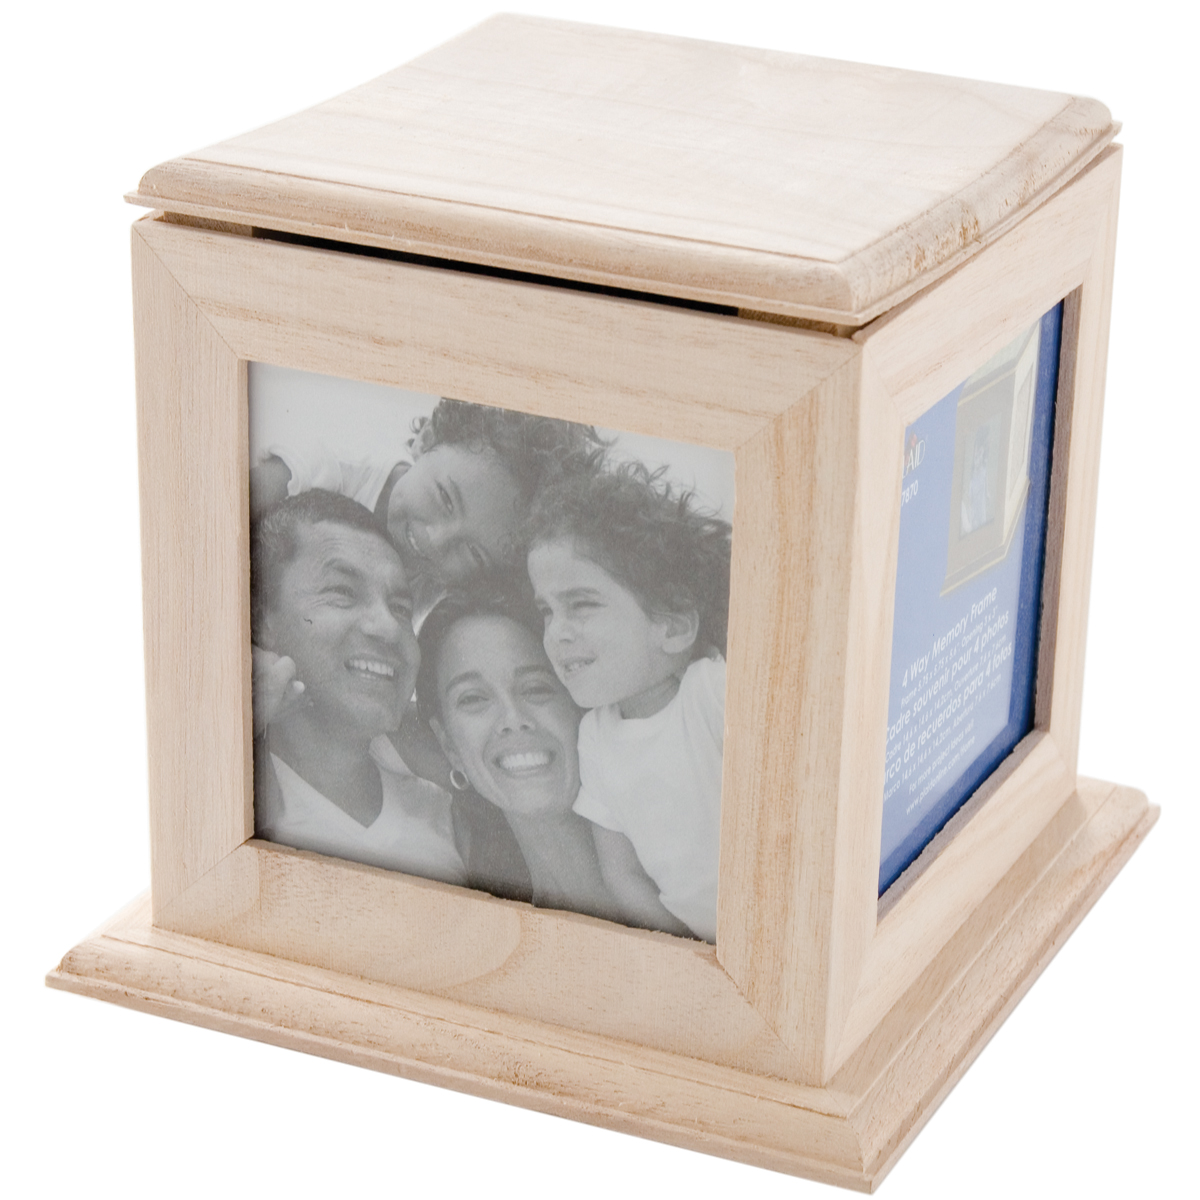 "Plaid   Wood Surfaces, 4-Way Memory Frame, size: 5 3/4 "" x 5 3/4 "" x 5 1/2 "",   3"" x 3"" openings"